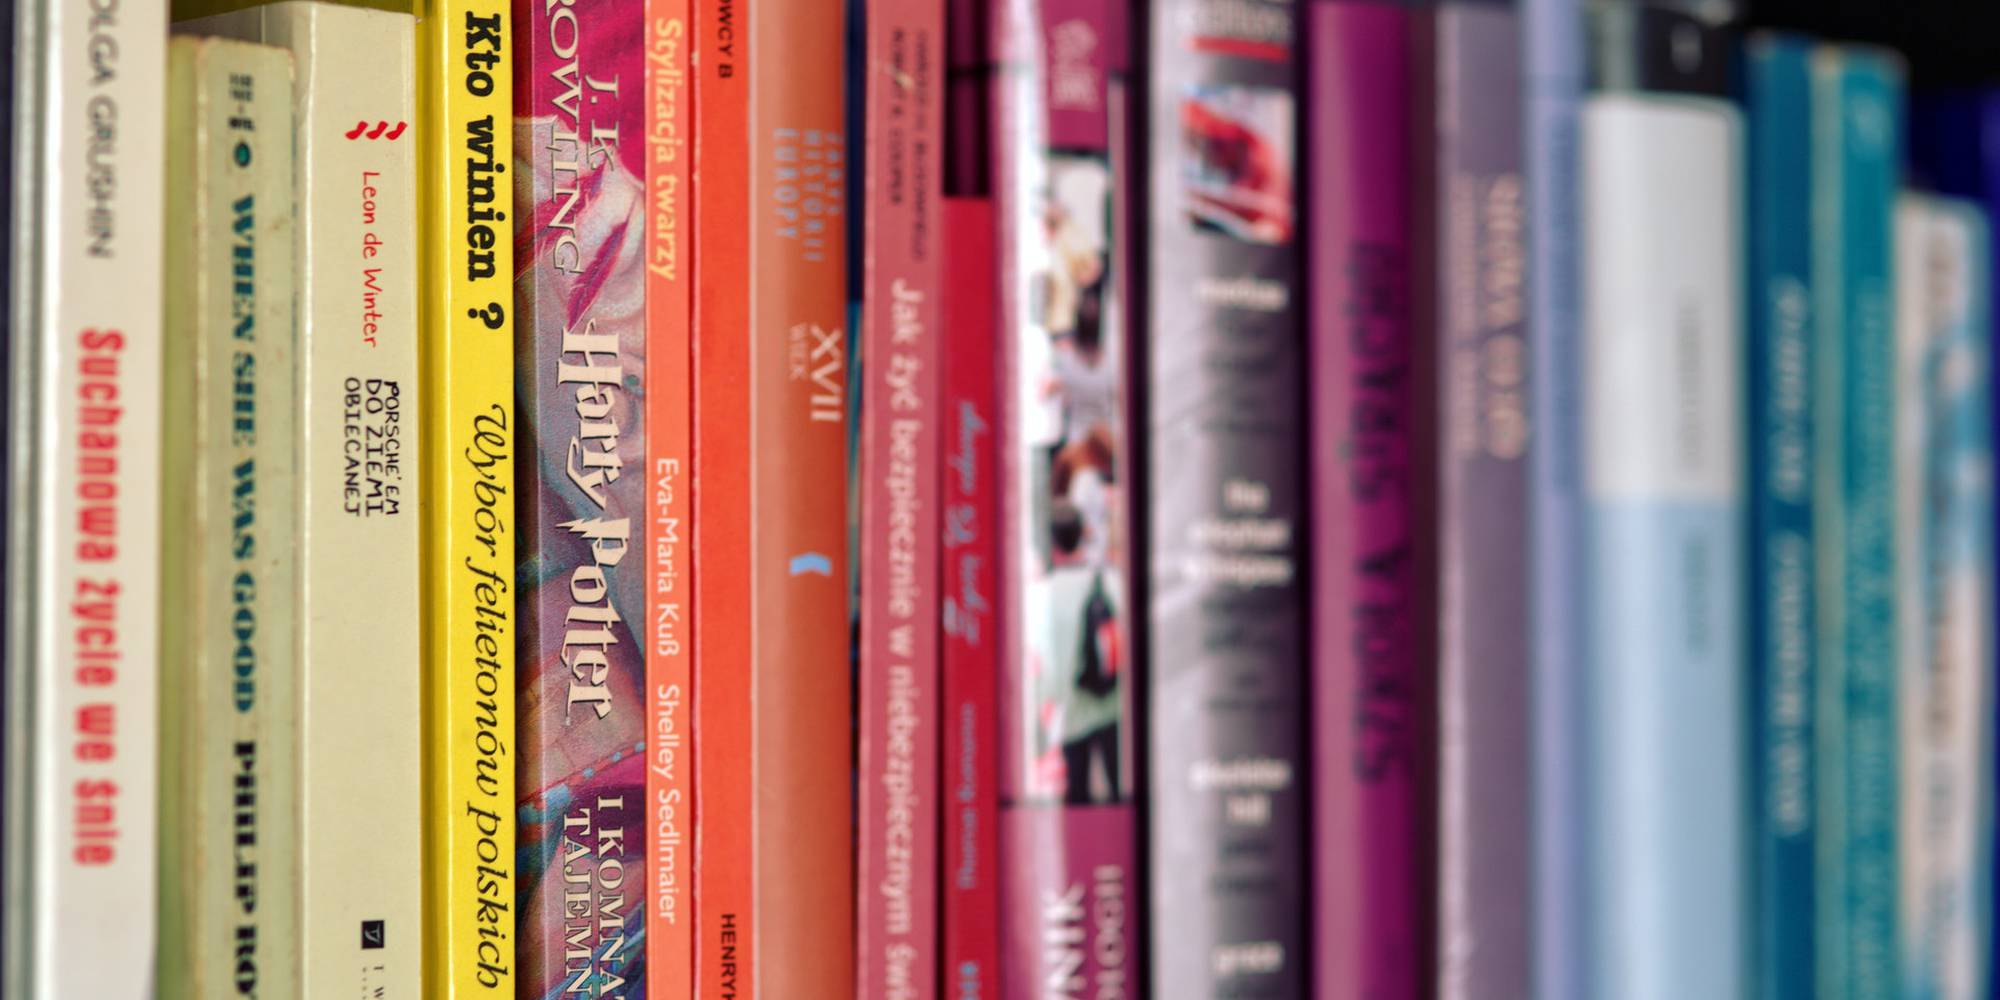 colorful-books-on-shelf-5710.jpg